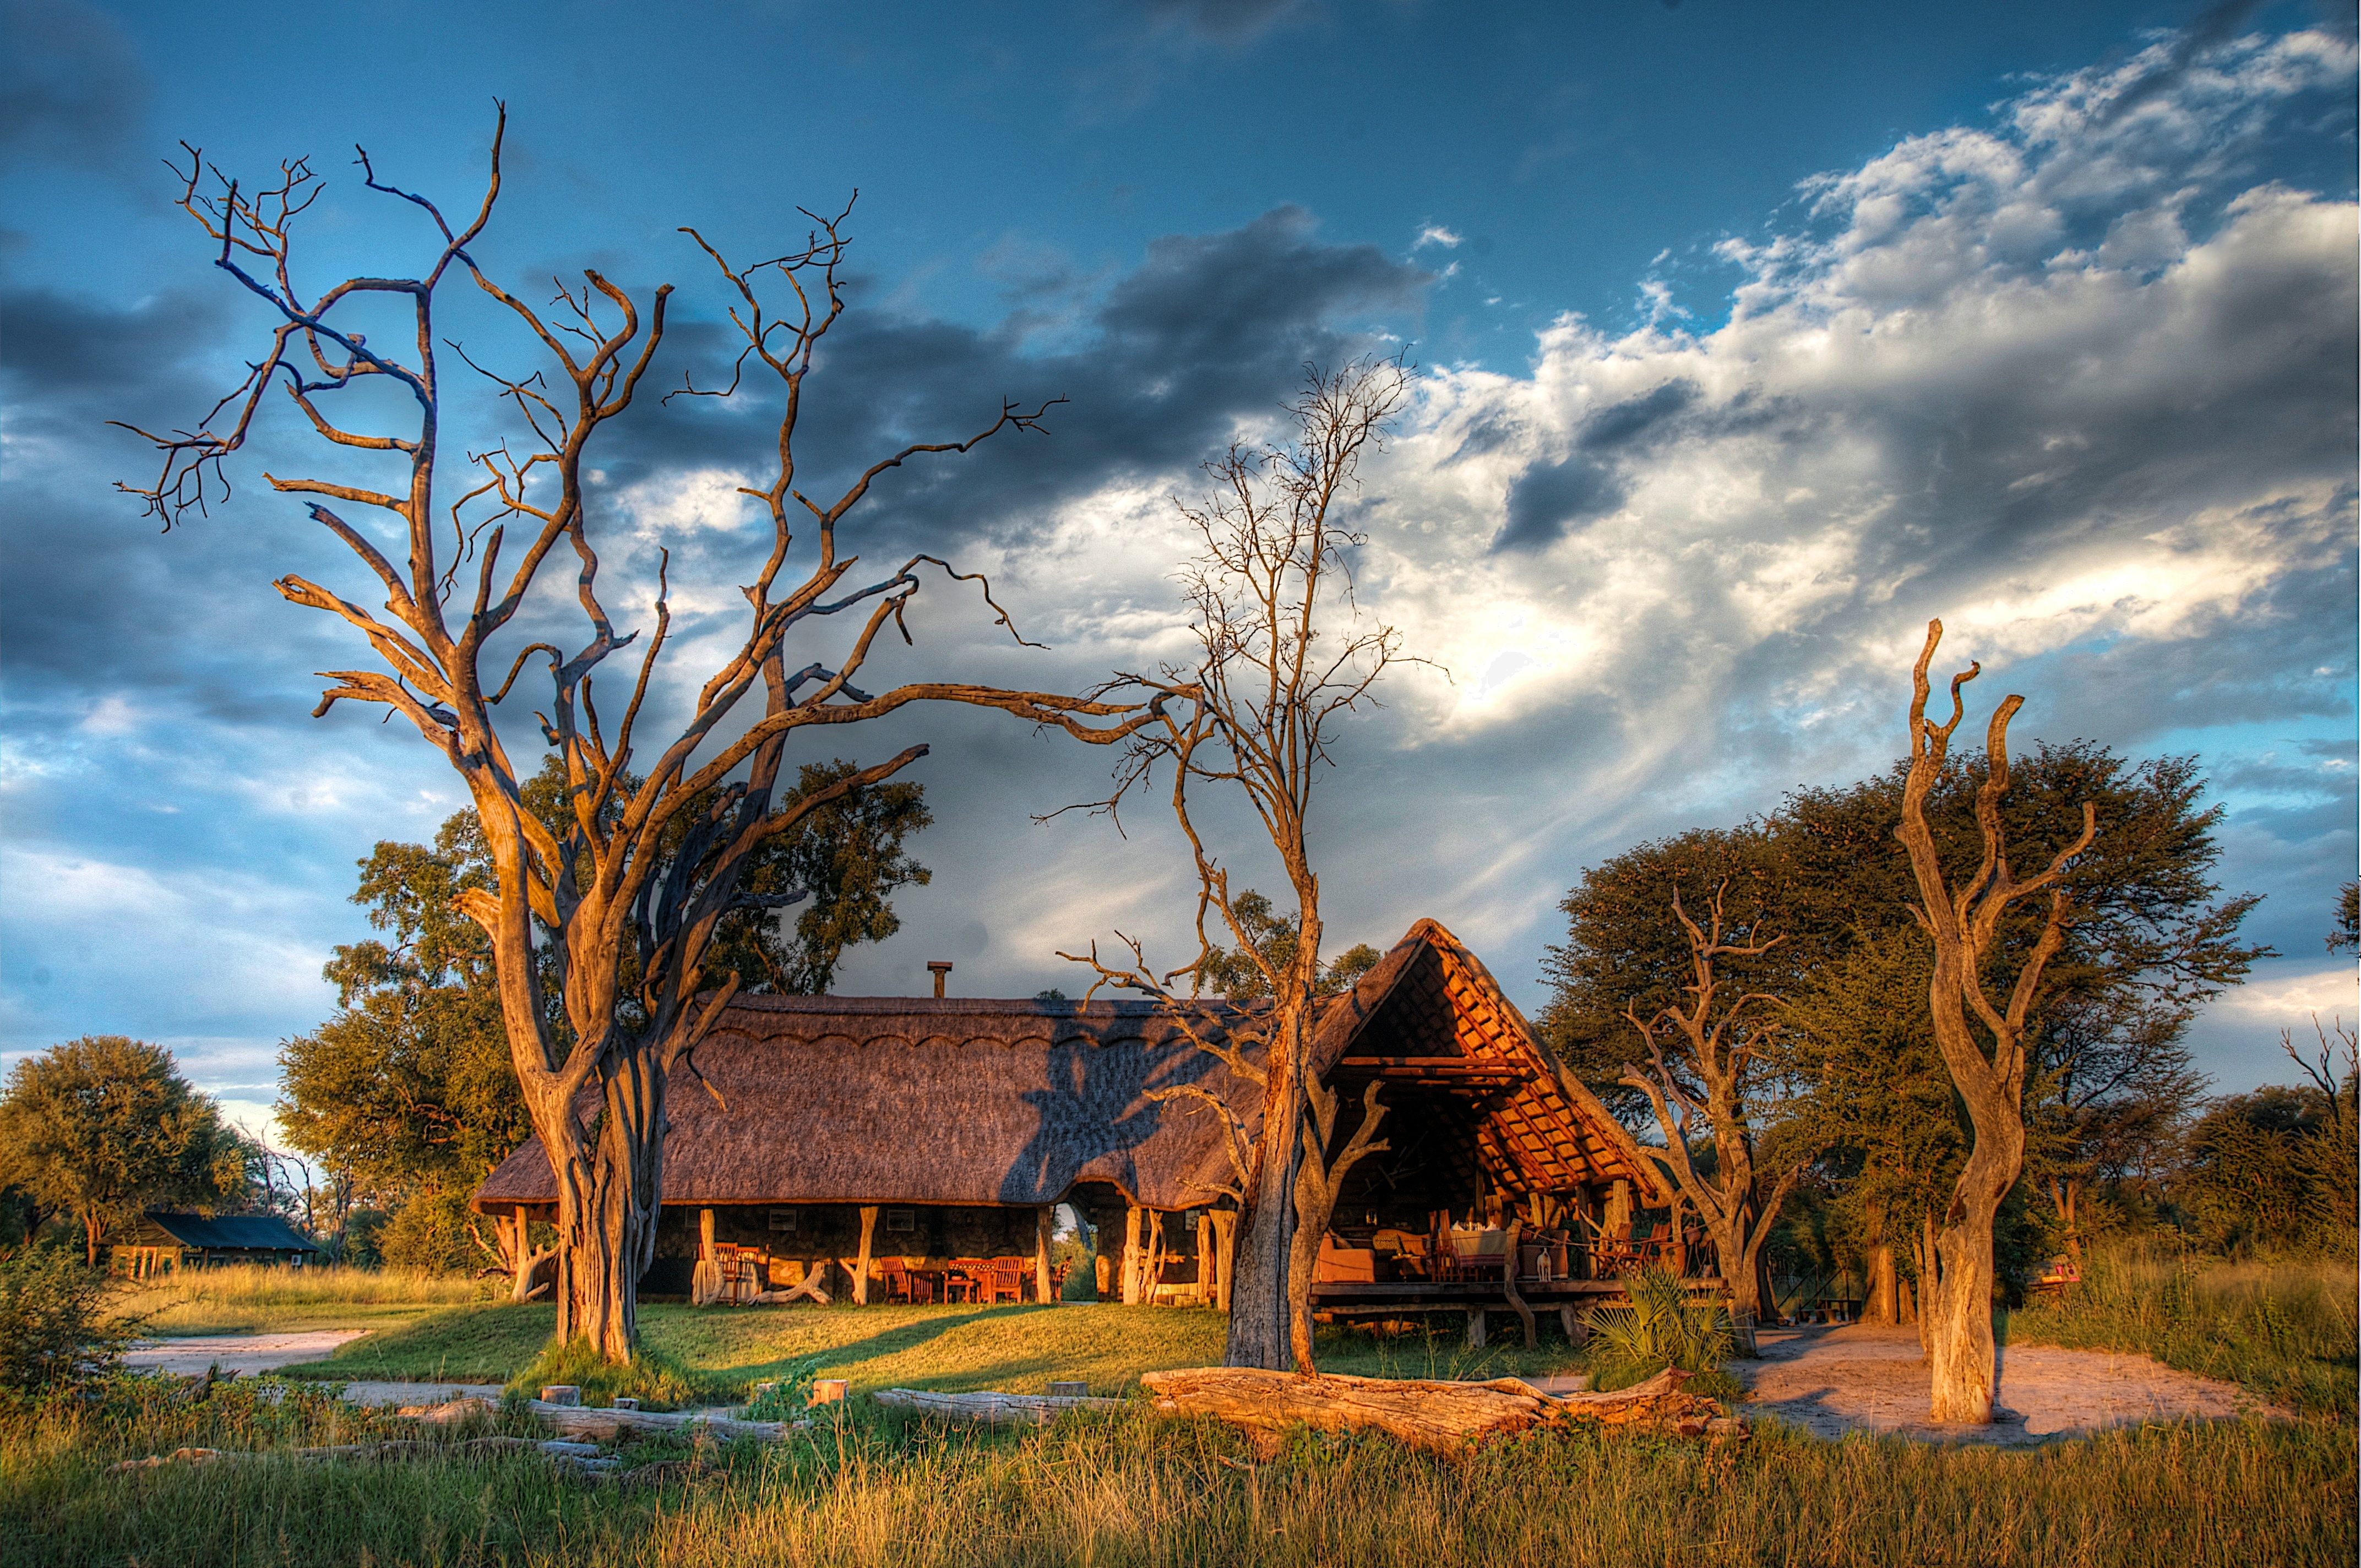 1_Bomani-_Main_lodge_offers_spectacular_views_over_our_pan.jpg